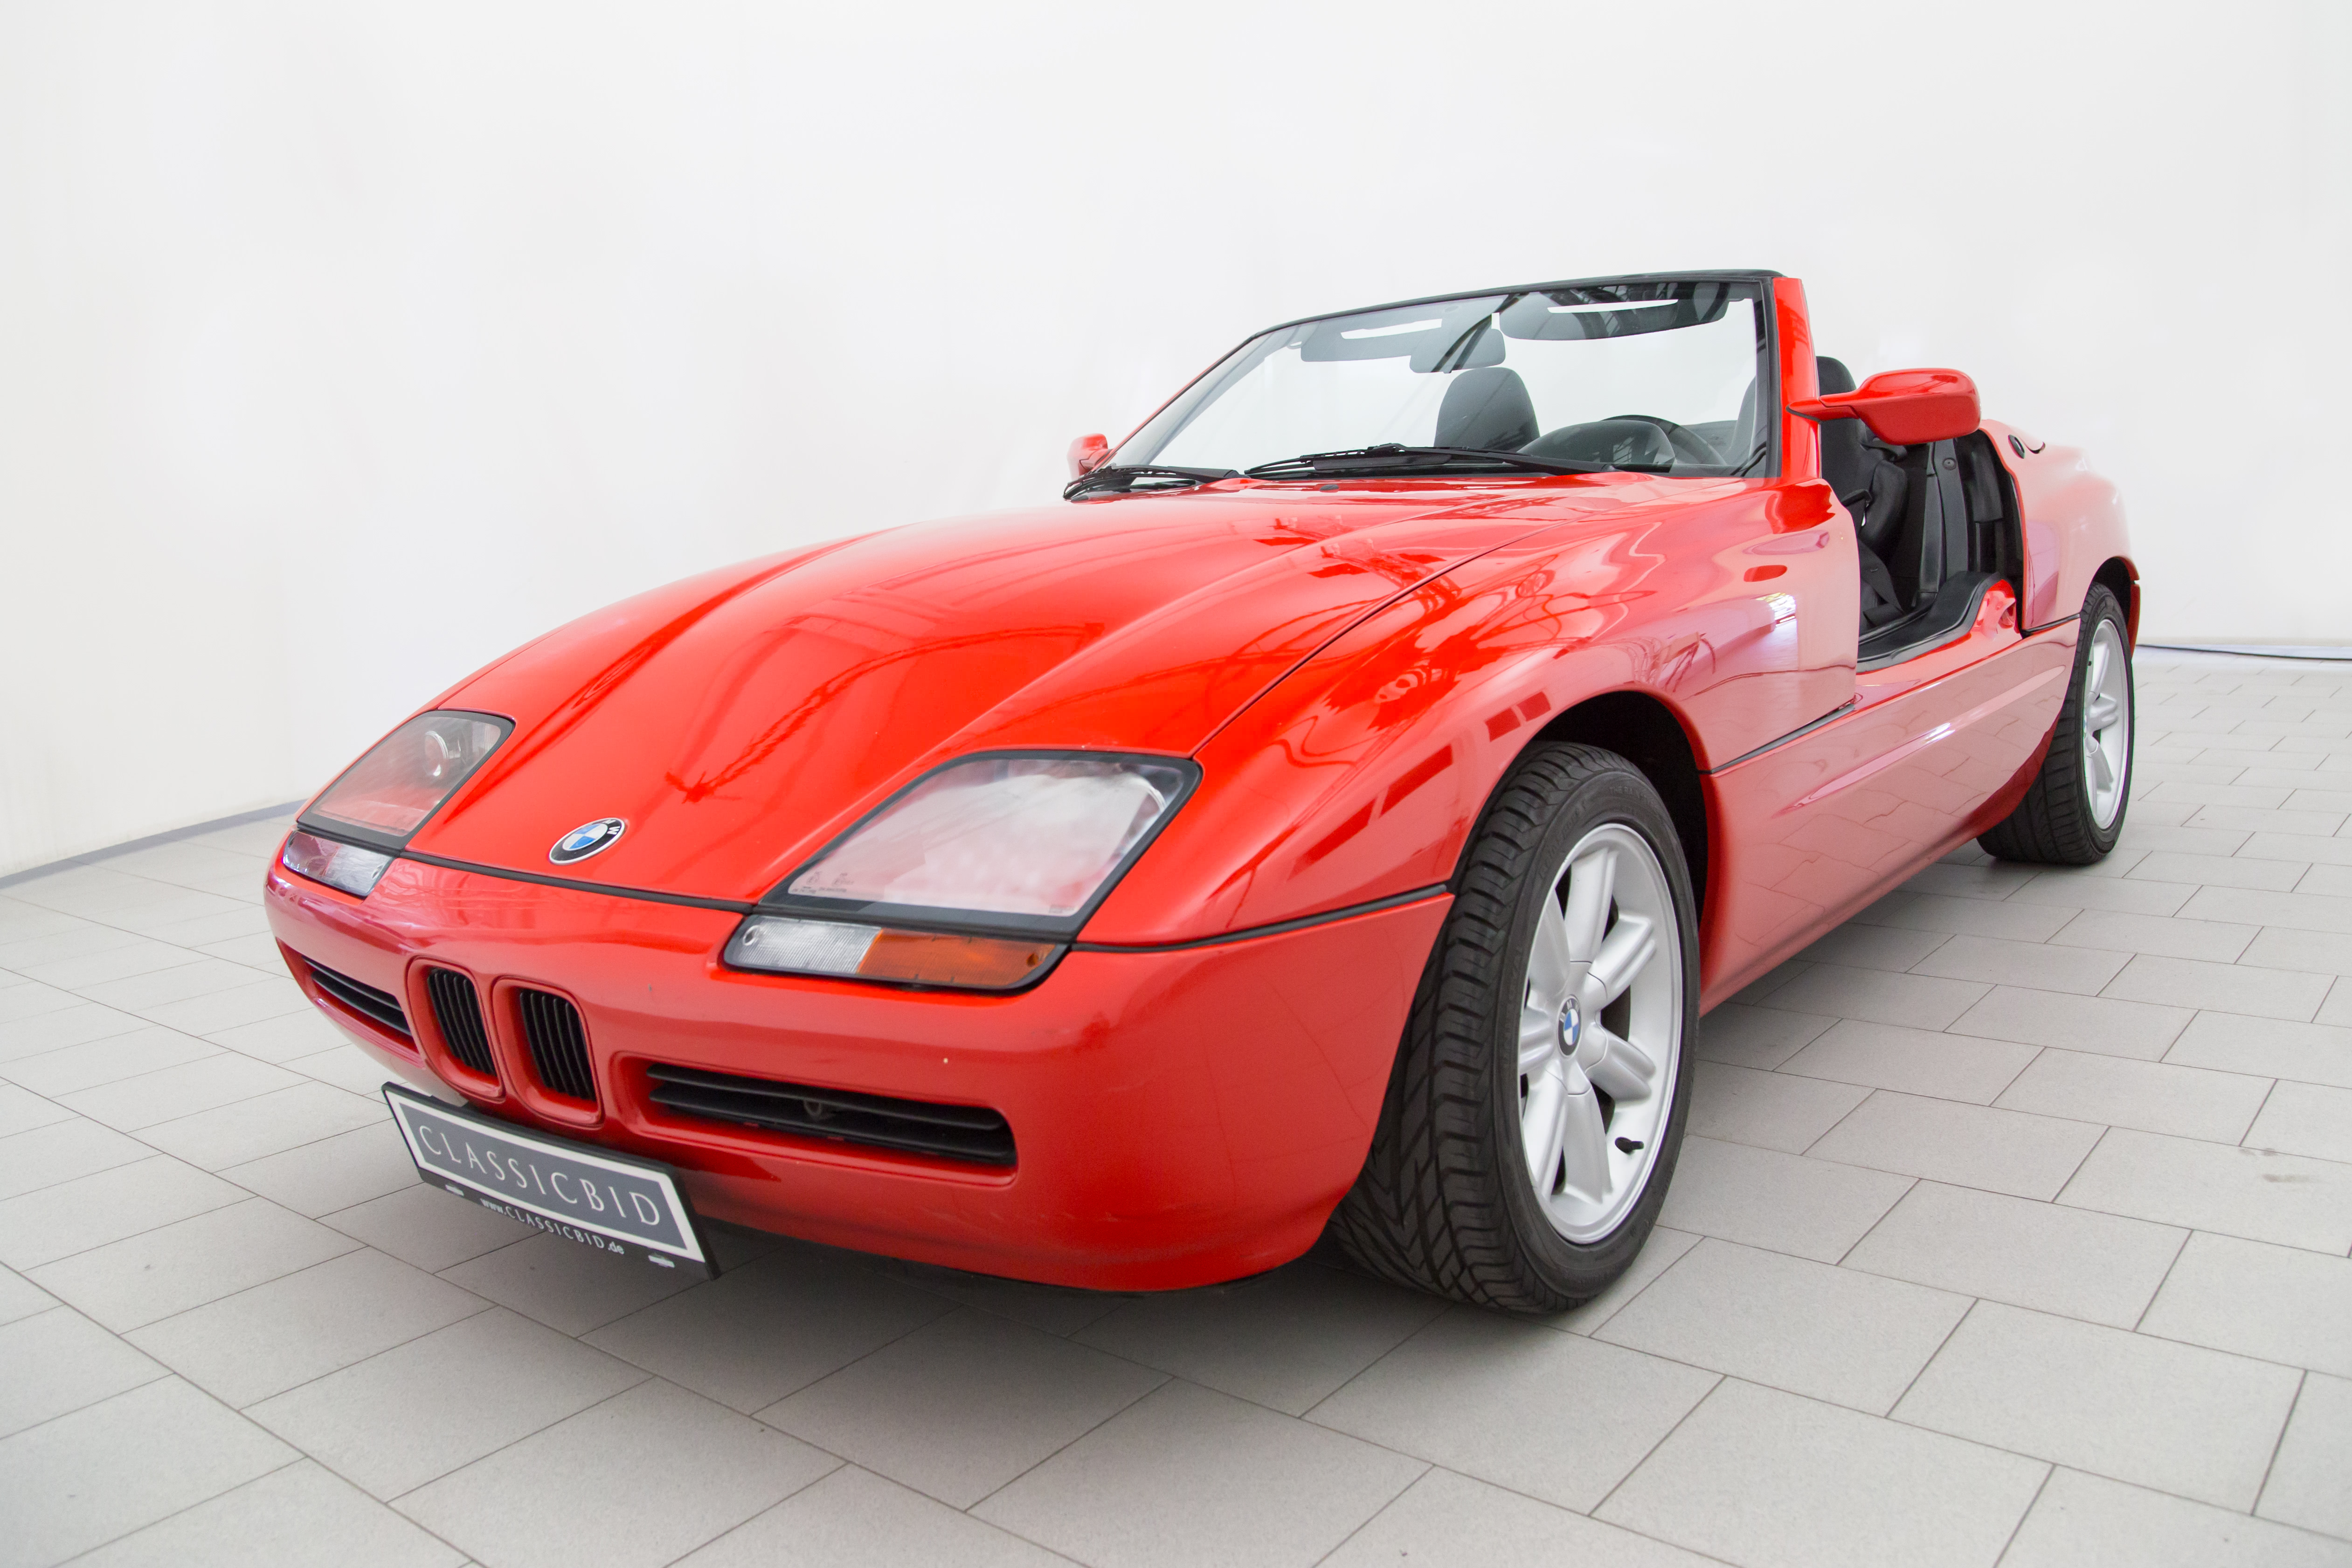 XT0047_01 Remarkable Bmw Z1 for Sale Philippines Cars Trend